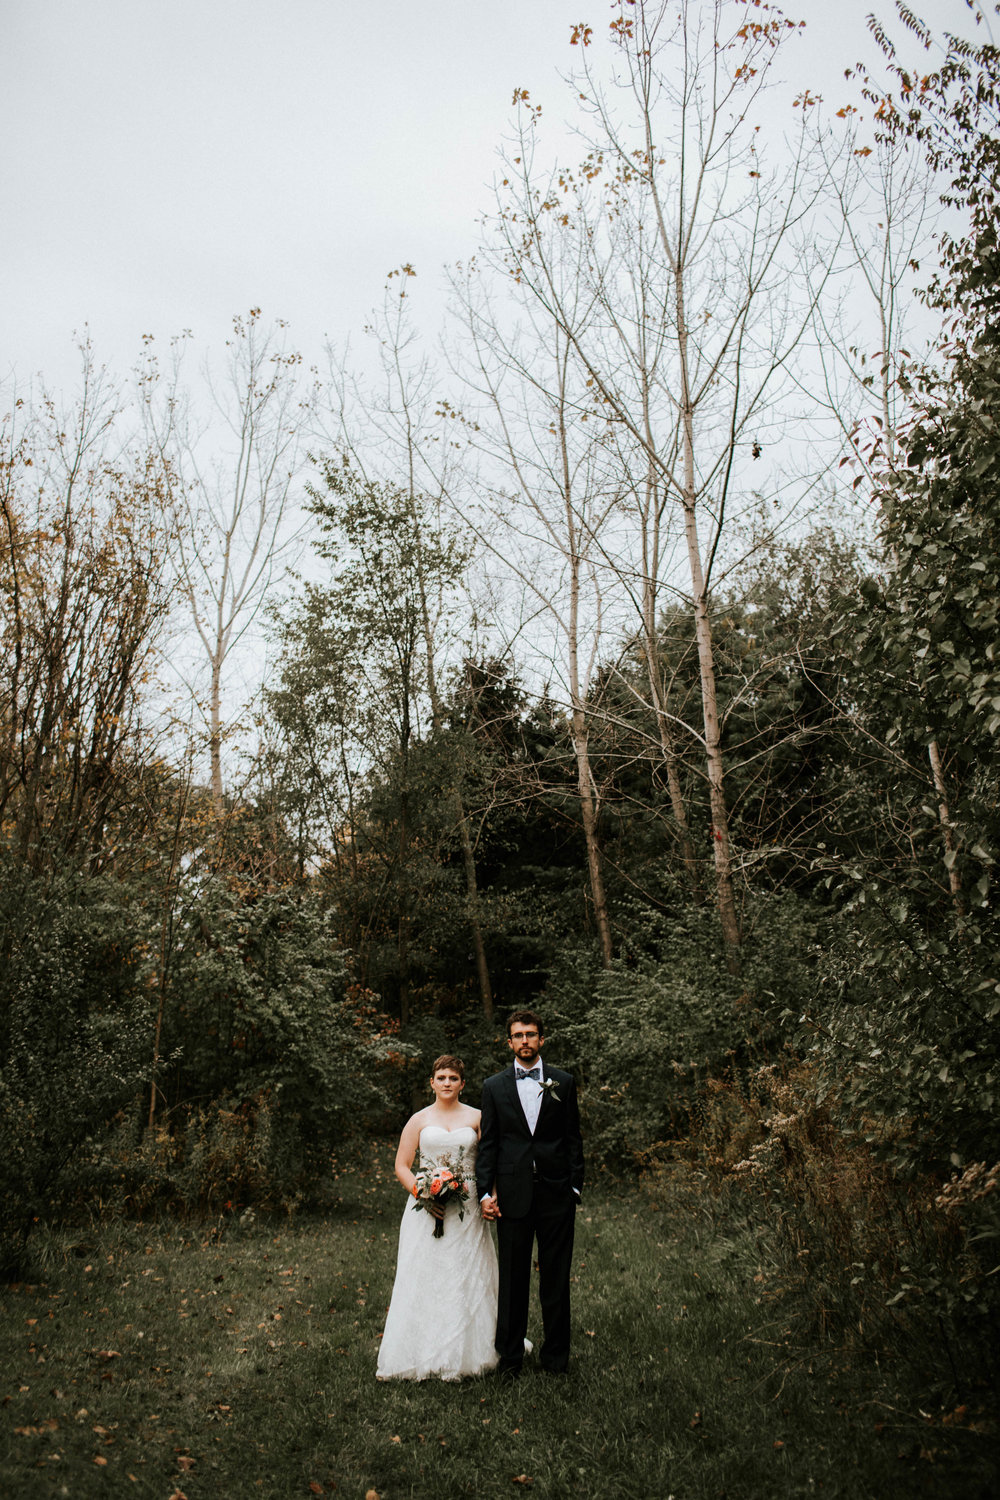 Columbus ohio wedding photographer grace e jones photography real fun joyful wedding52.jpg